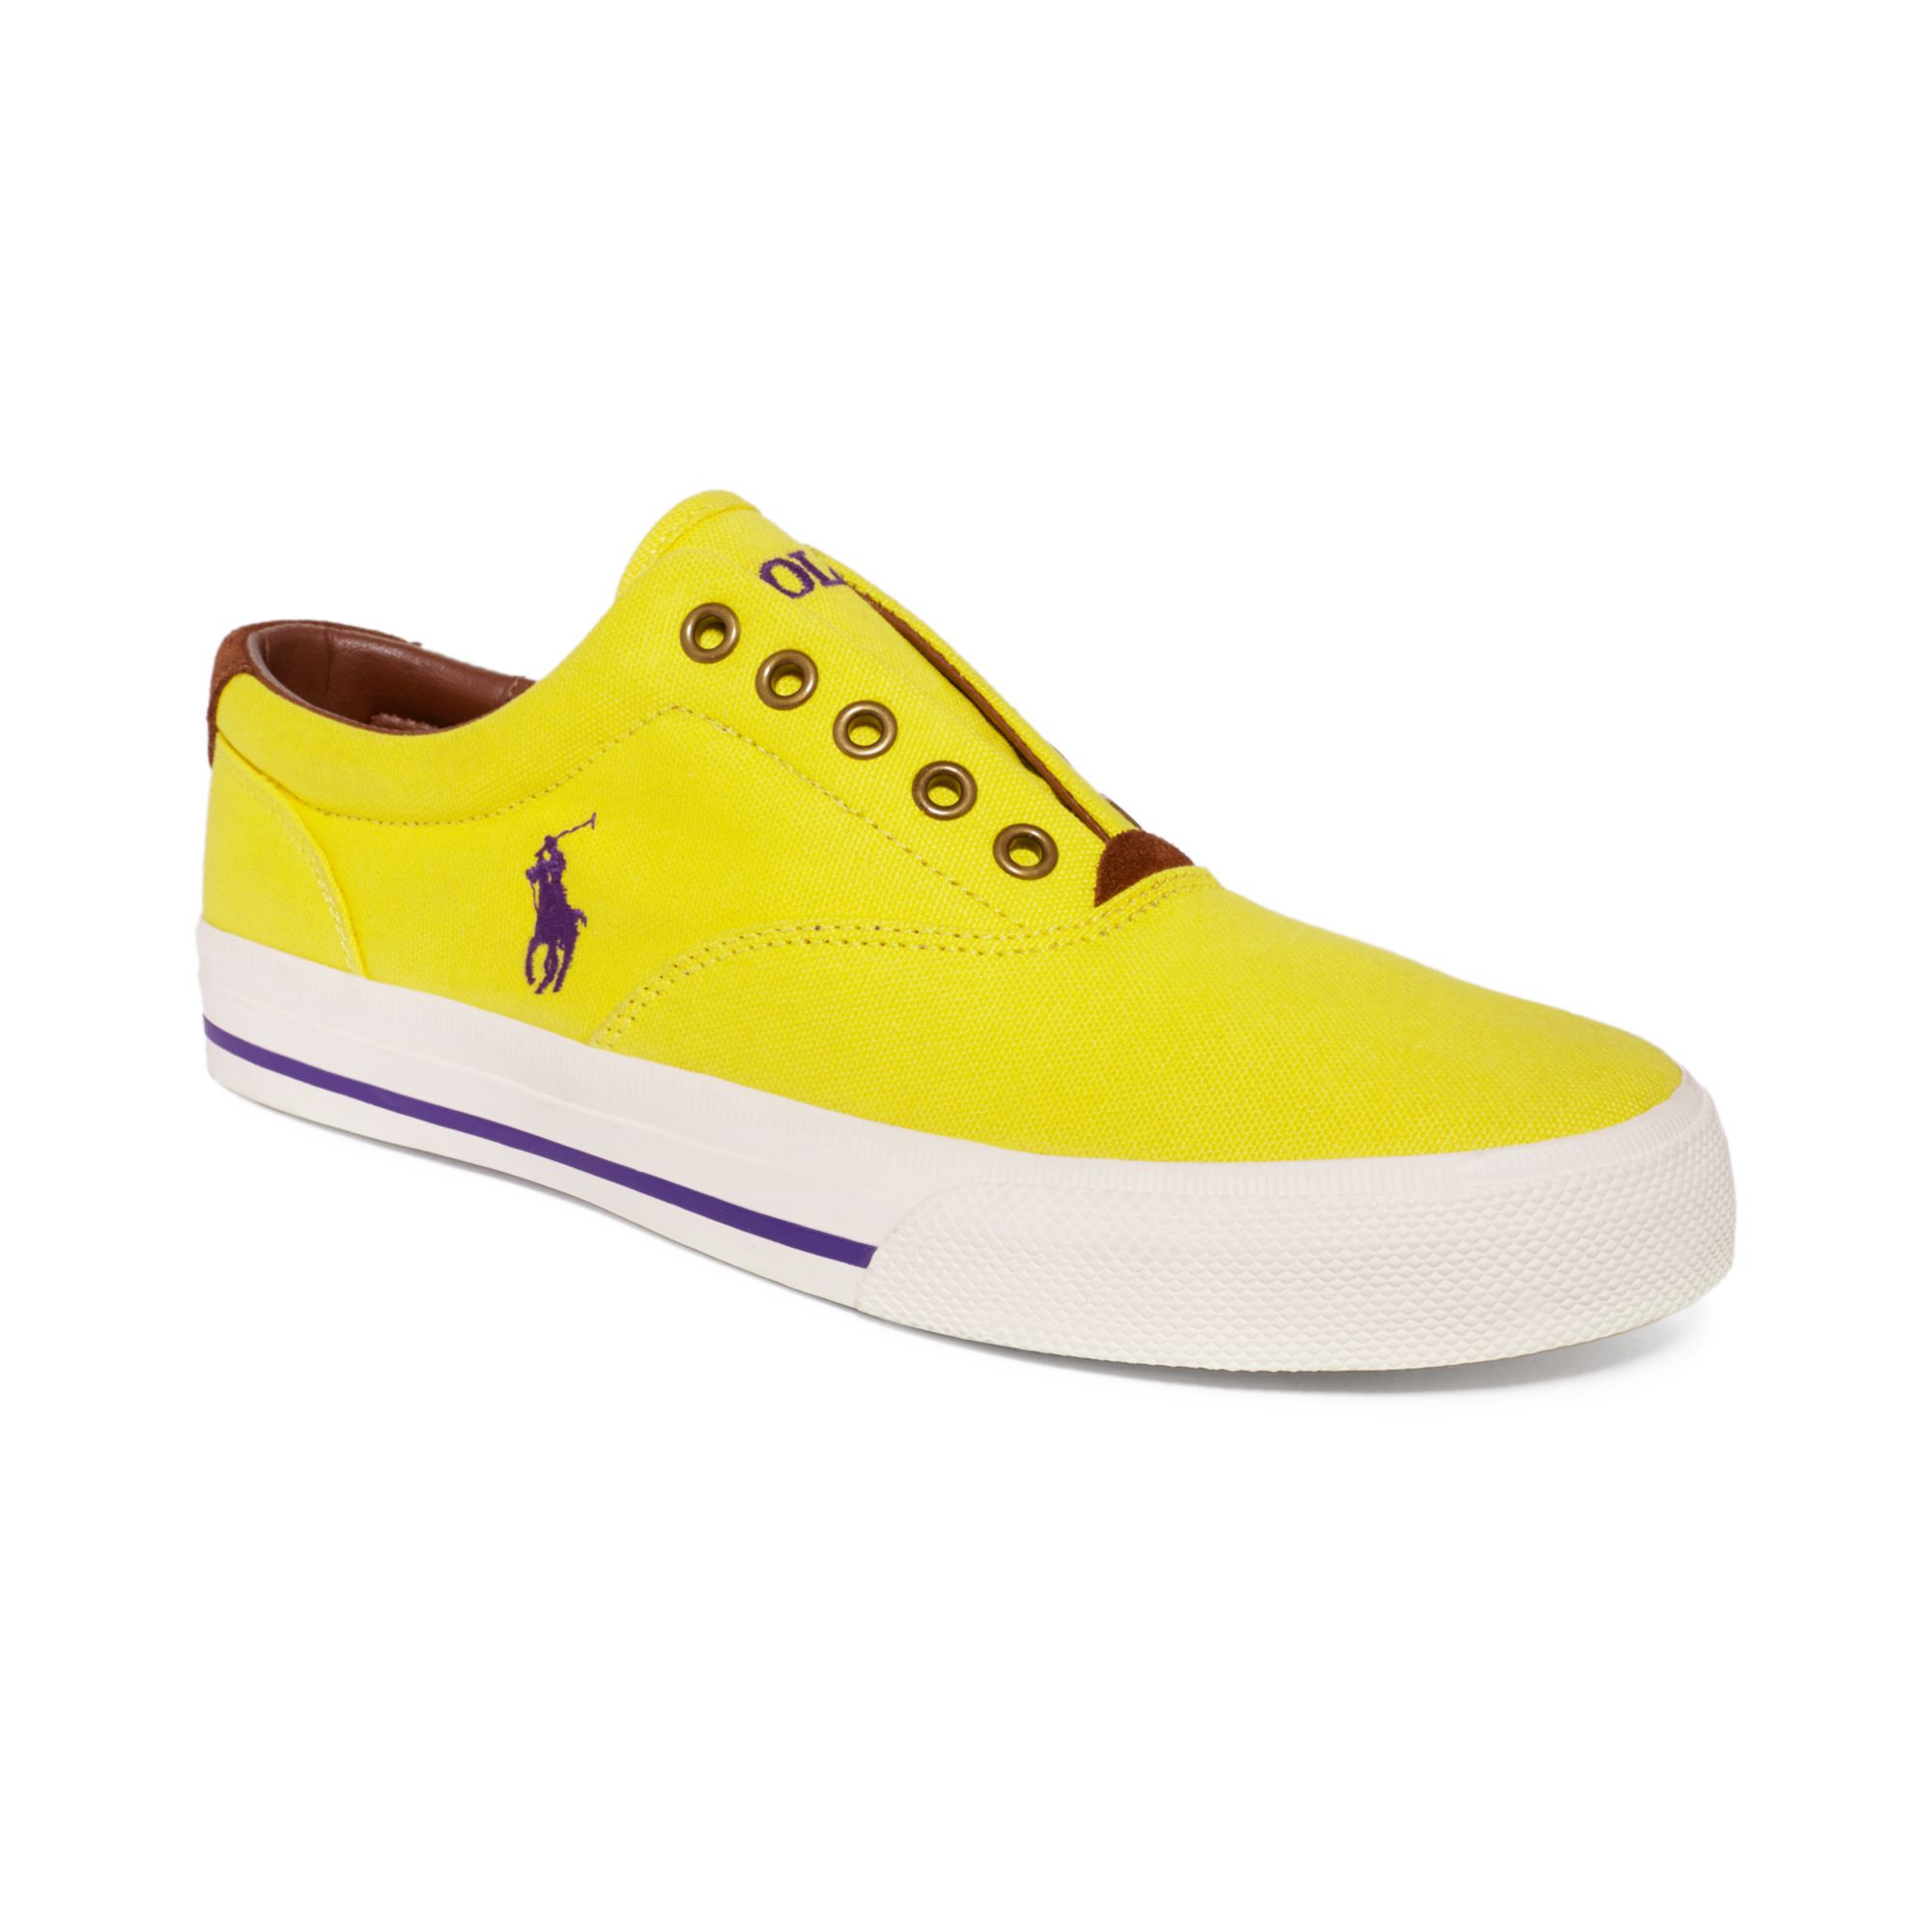 ralph lauren polo vito sneakers in yellow for men lyst. Black Bedroom Furniture Sets. Home Design Ideas